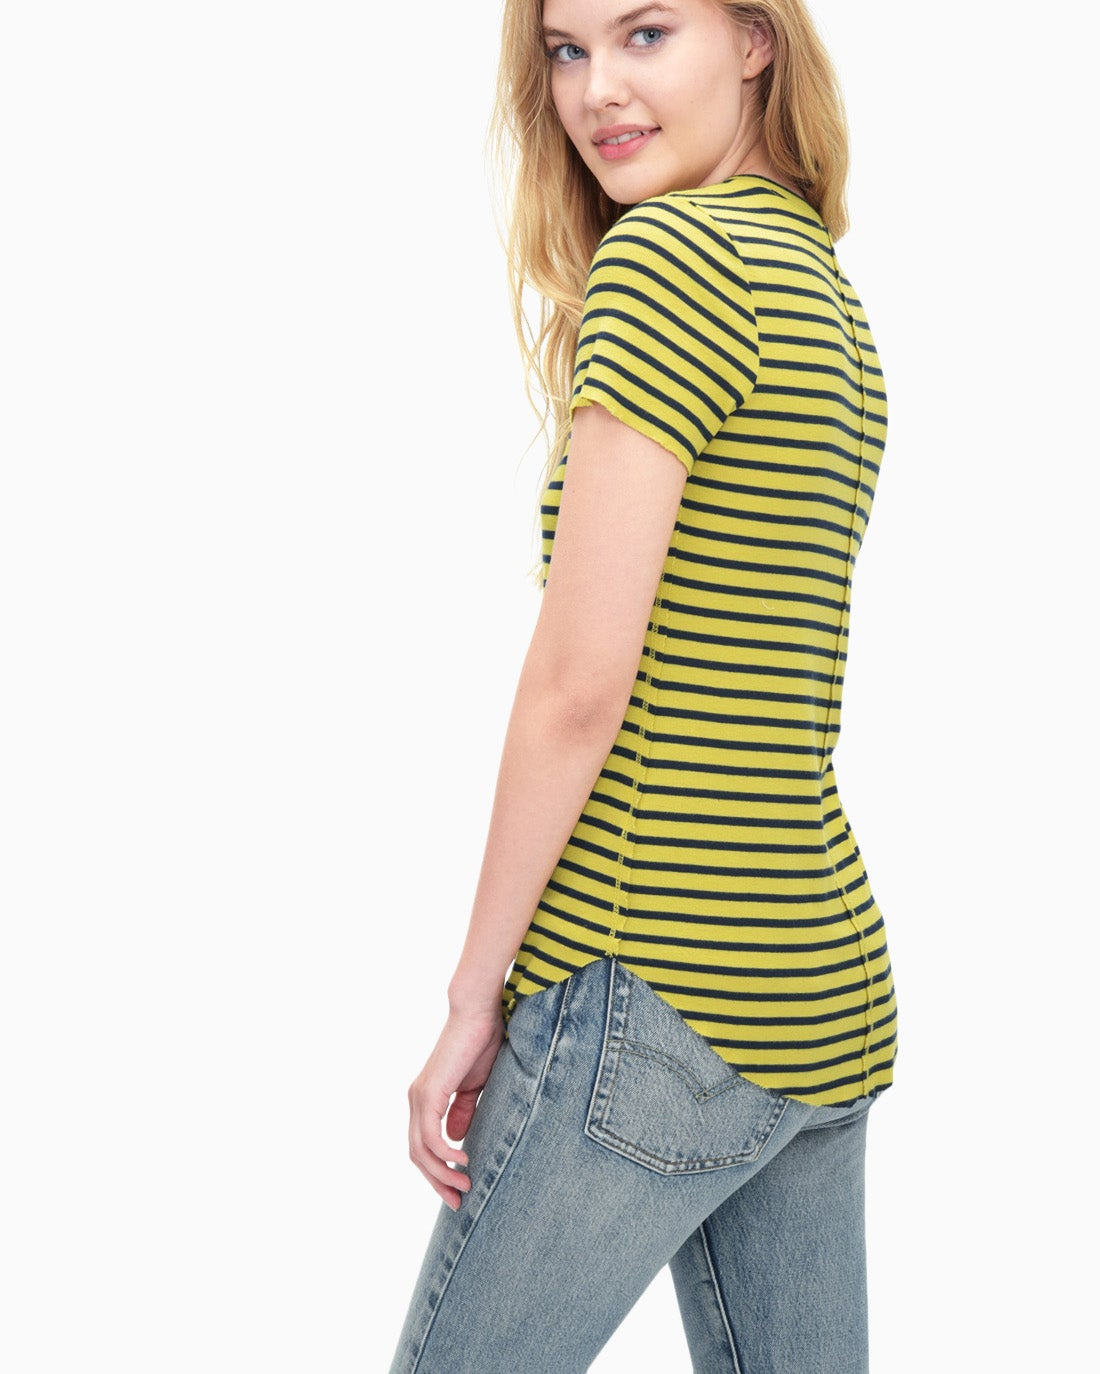 Splendid Women's 1x1 Venice Stripe Crew Neck Top